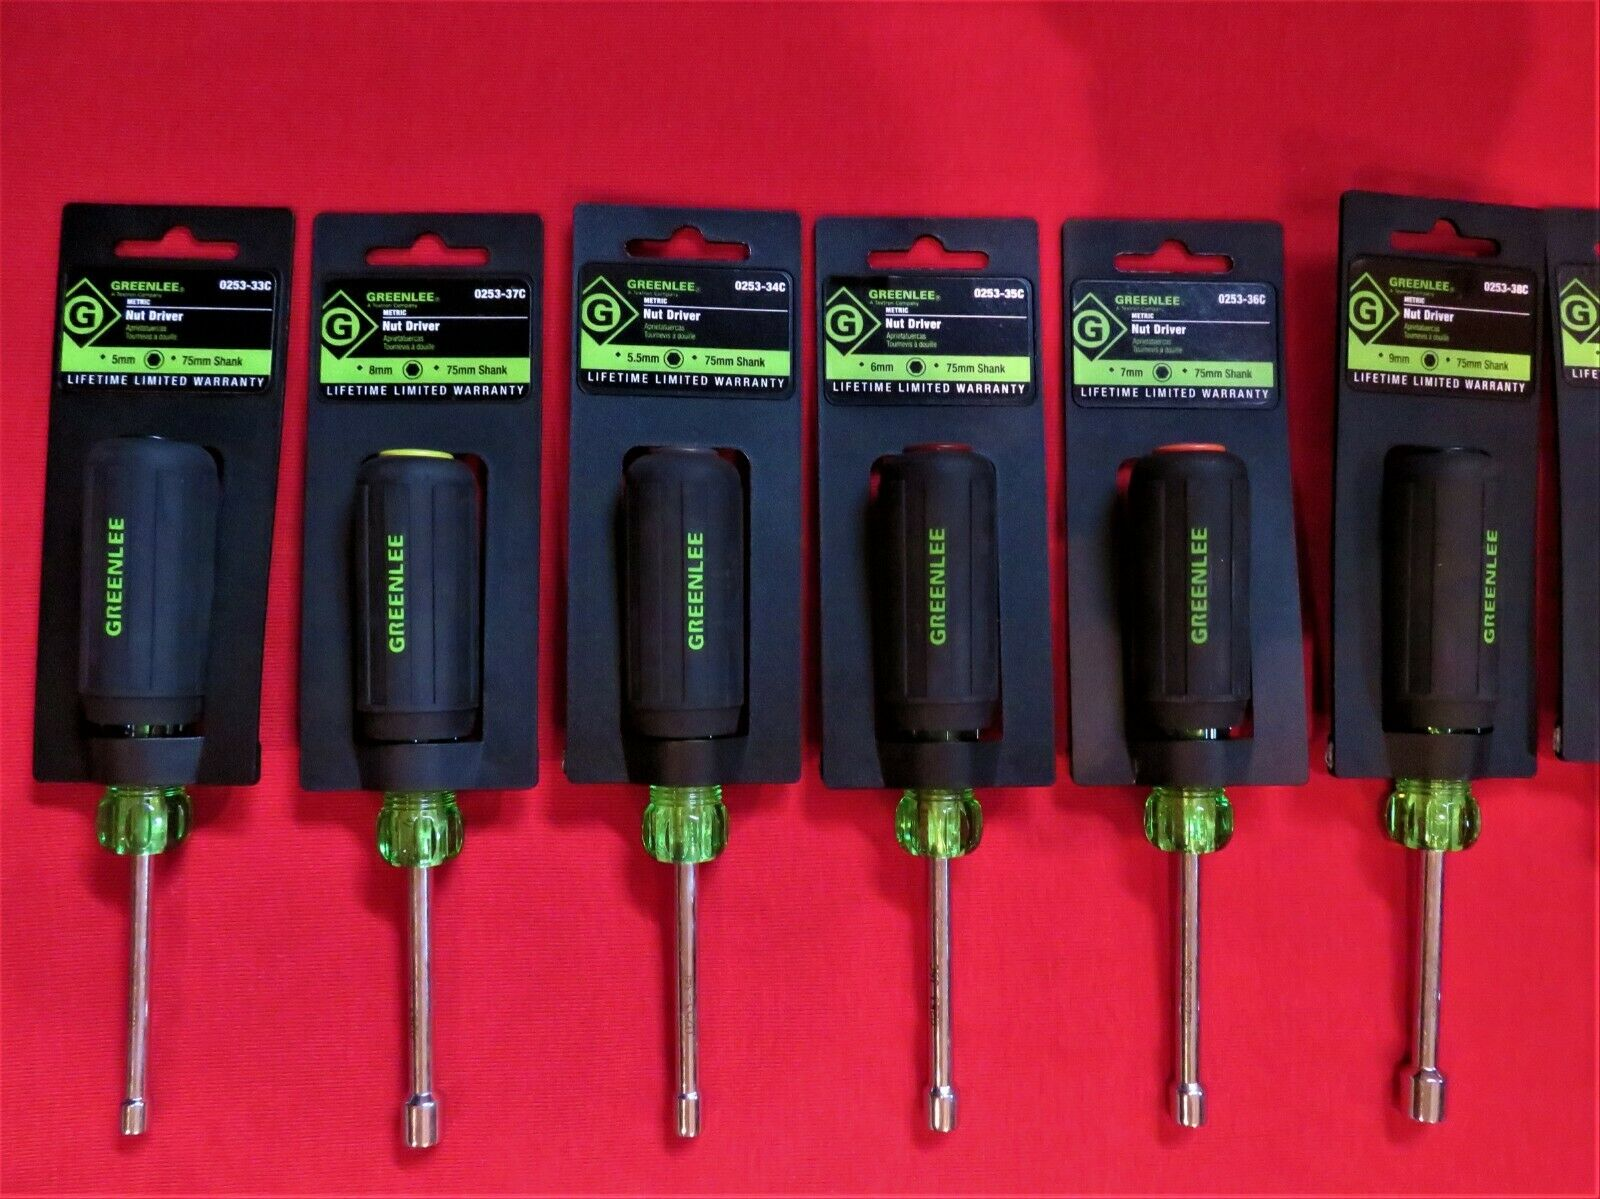 GREENLEE TOOLS METRIC NUT DRIVERS 10 PIECE SET HOLLOW SHAFT 1